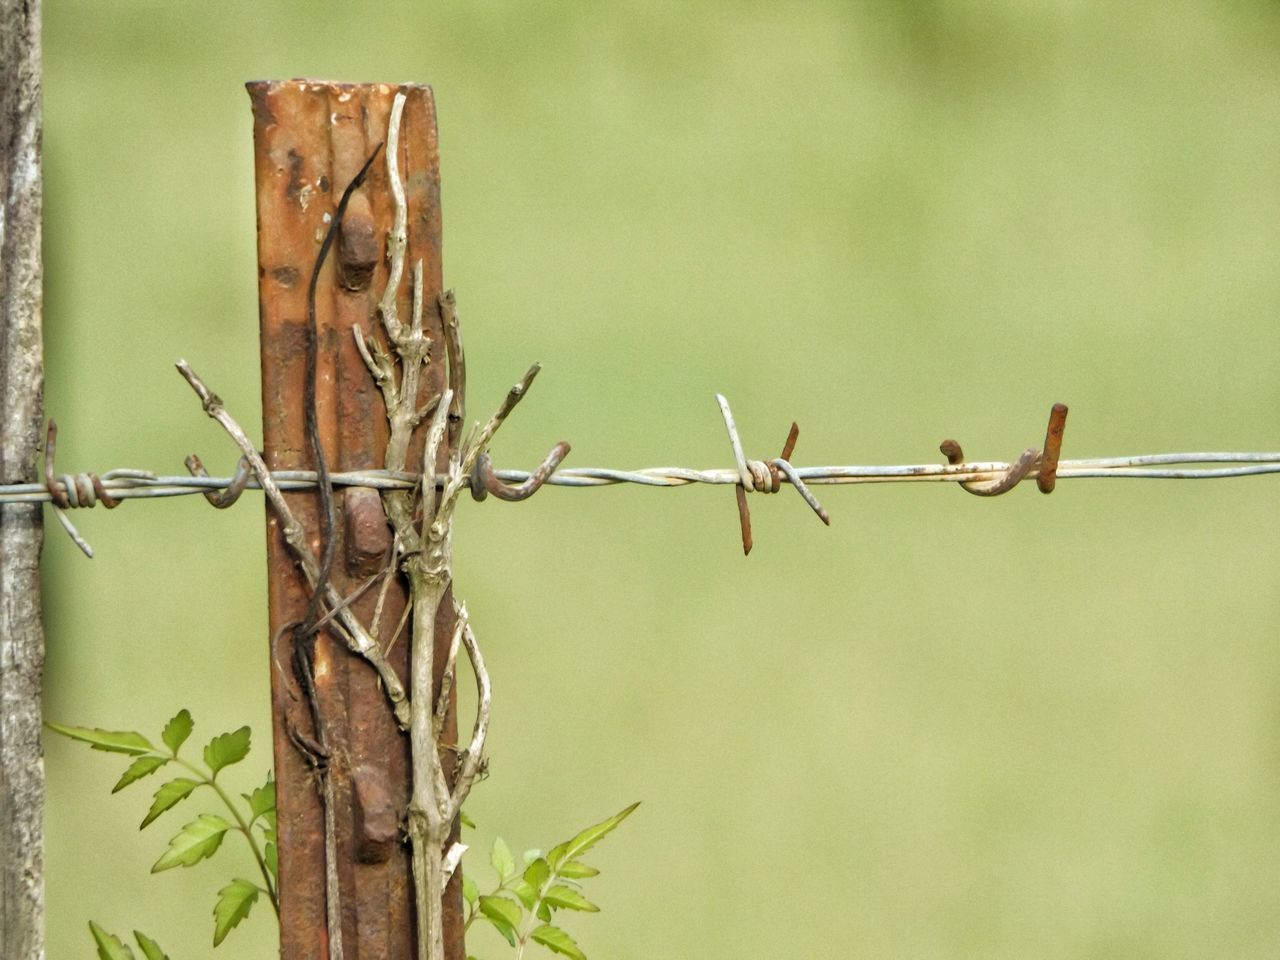 Barbed Wire Fence Barbed Wire Barbed Wire Fence Post Barbed Wire Close Up Barbed Wire Wednesday Barbed World Barbedwire Love Barbed Wires Farm Life Fencing Wire Showcase July